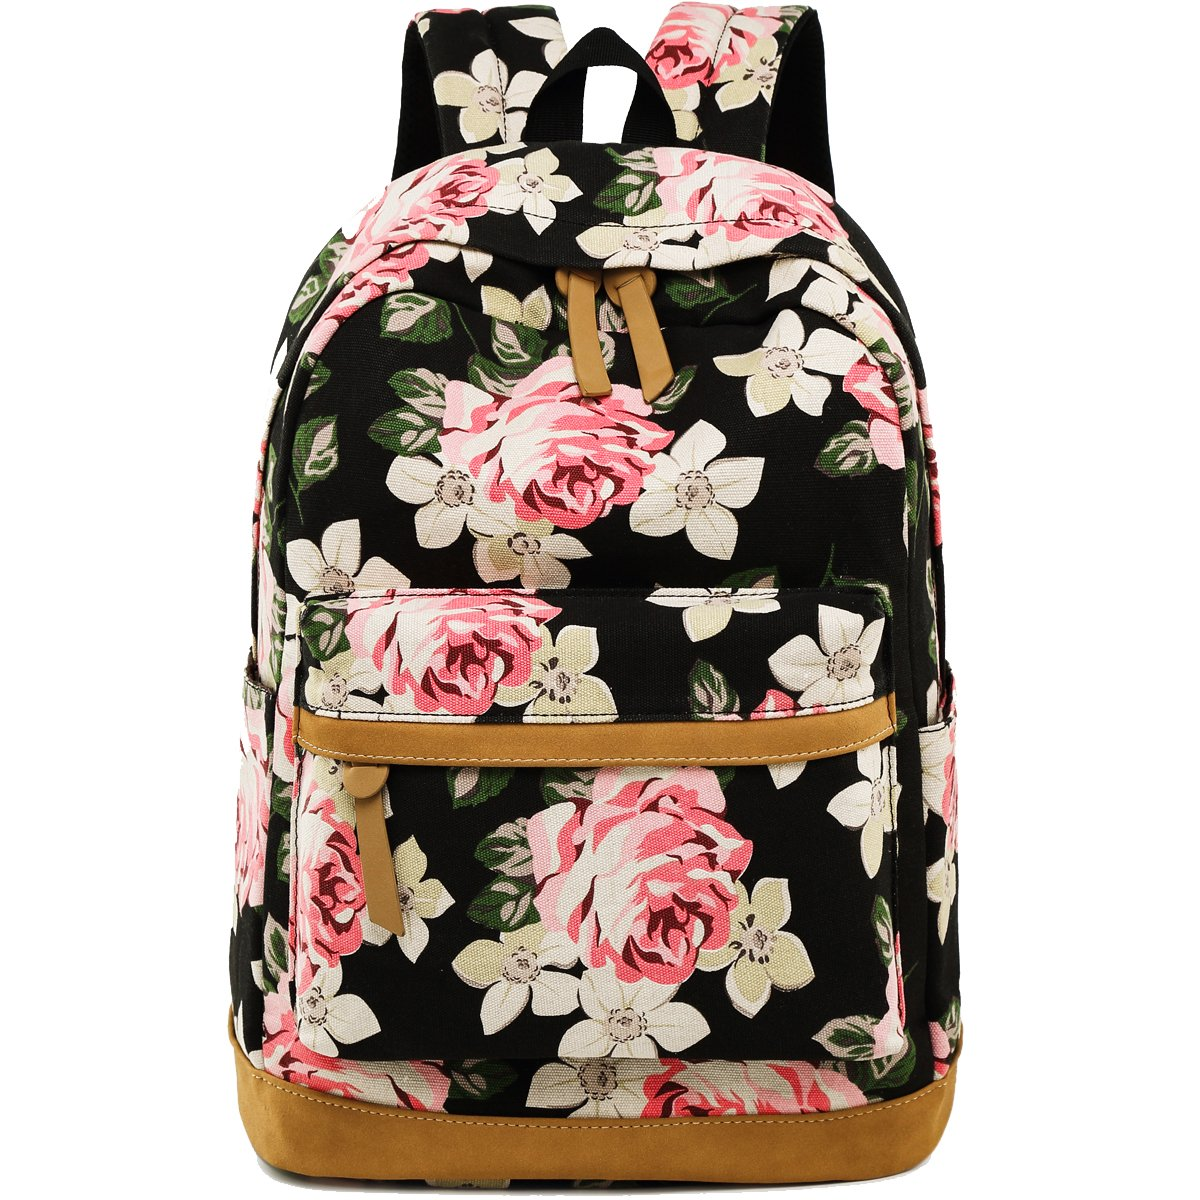 Canvas Backpack School Bags Set for Teens Girls, Casual Daypack + Shoulder Bag +Pencil Case (black-stripe) BLUBOON